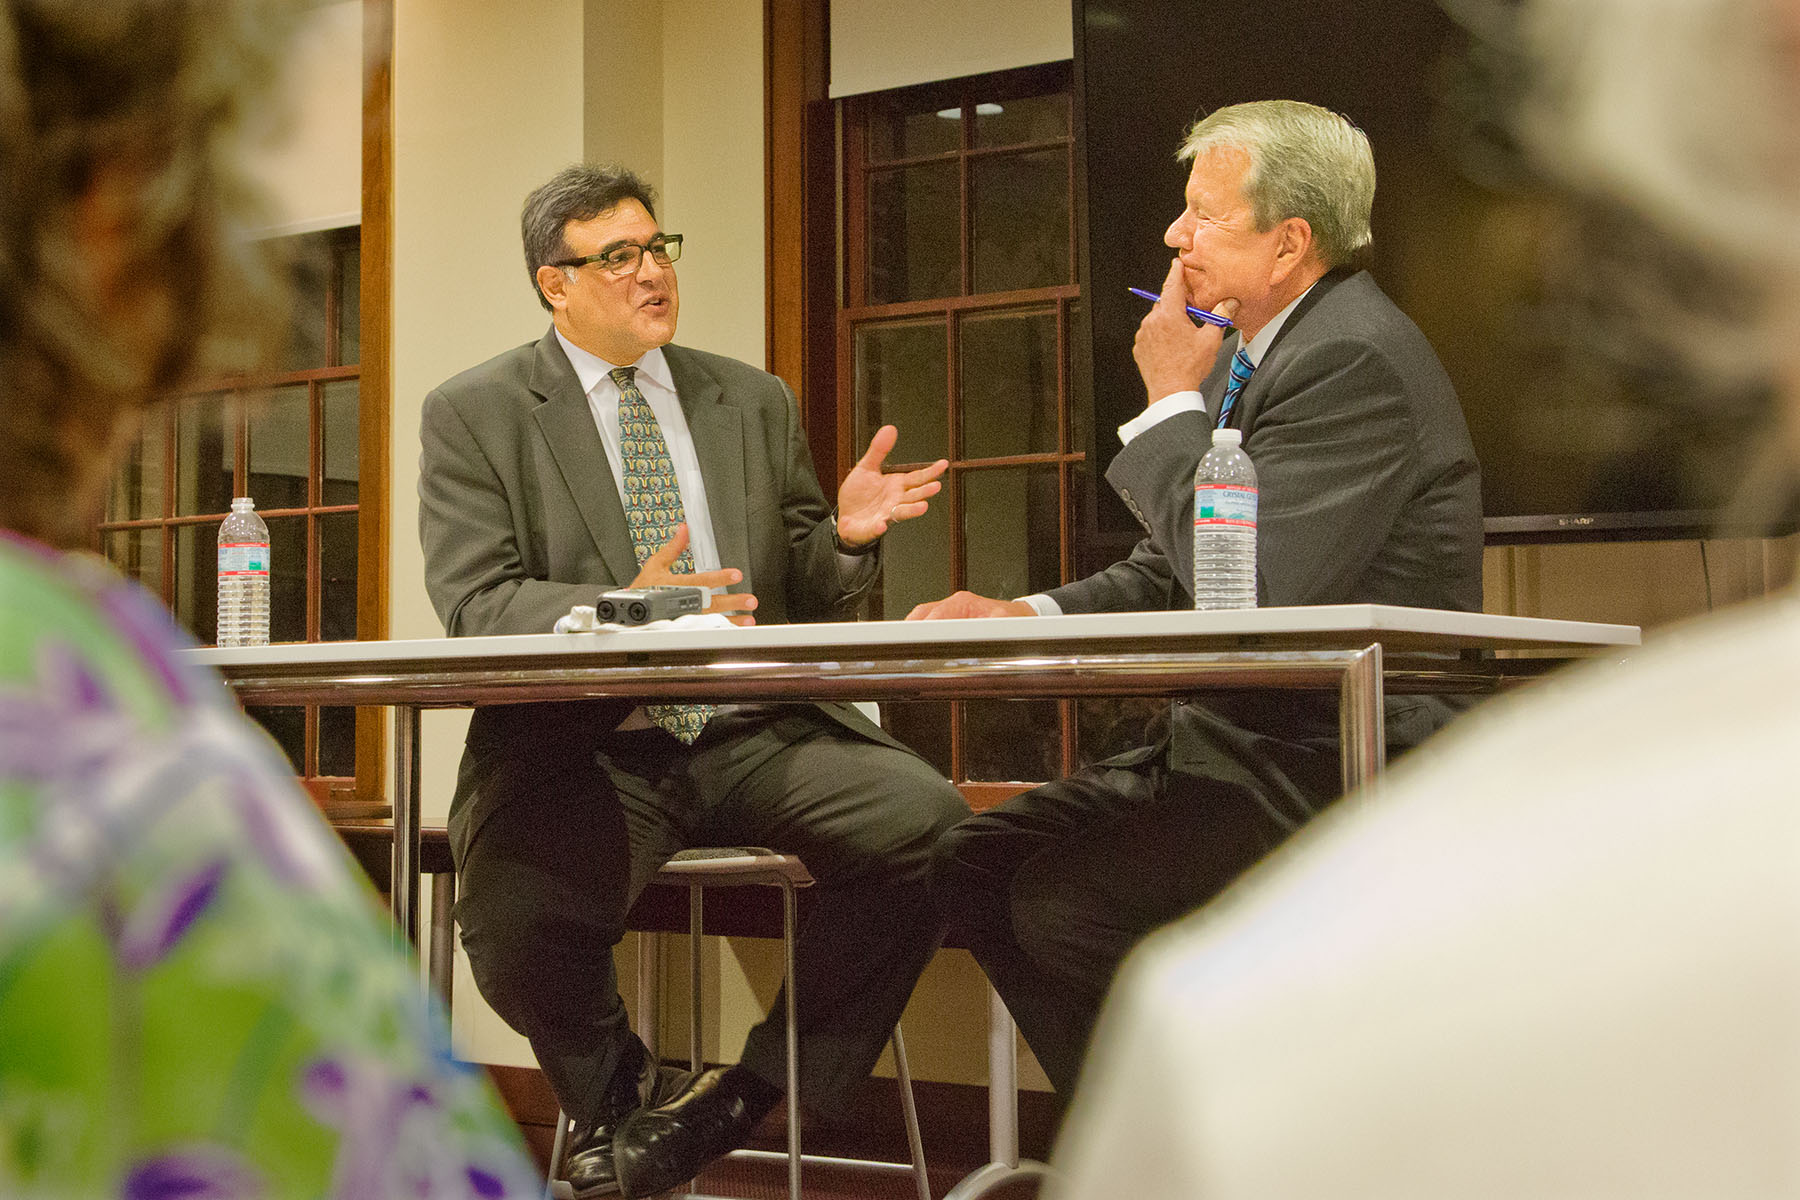 John Kiriakou was interviewed Oct. 27, 2015, by WRAL journalist David Crabtree at University of North Carolina.  (Photo credit: © Jerry Markatos)